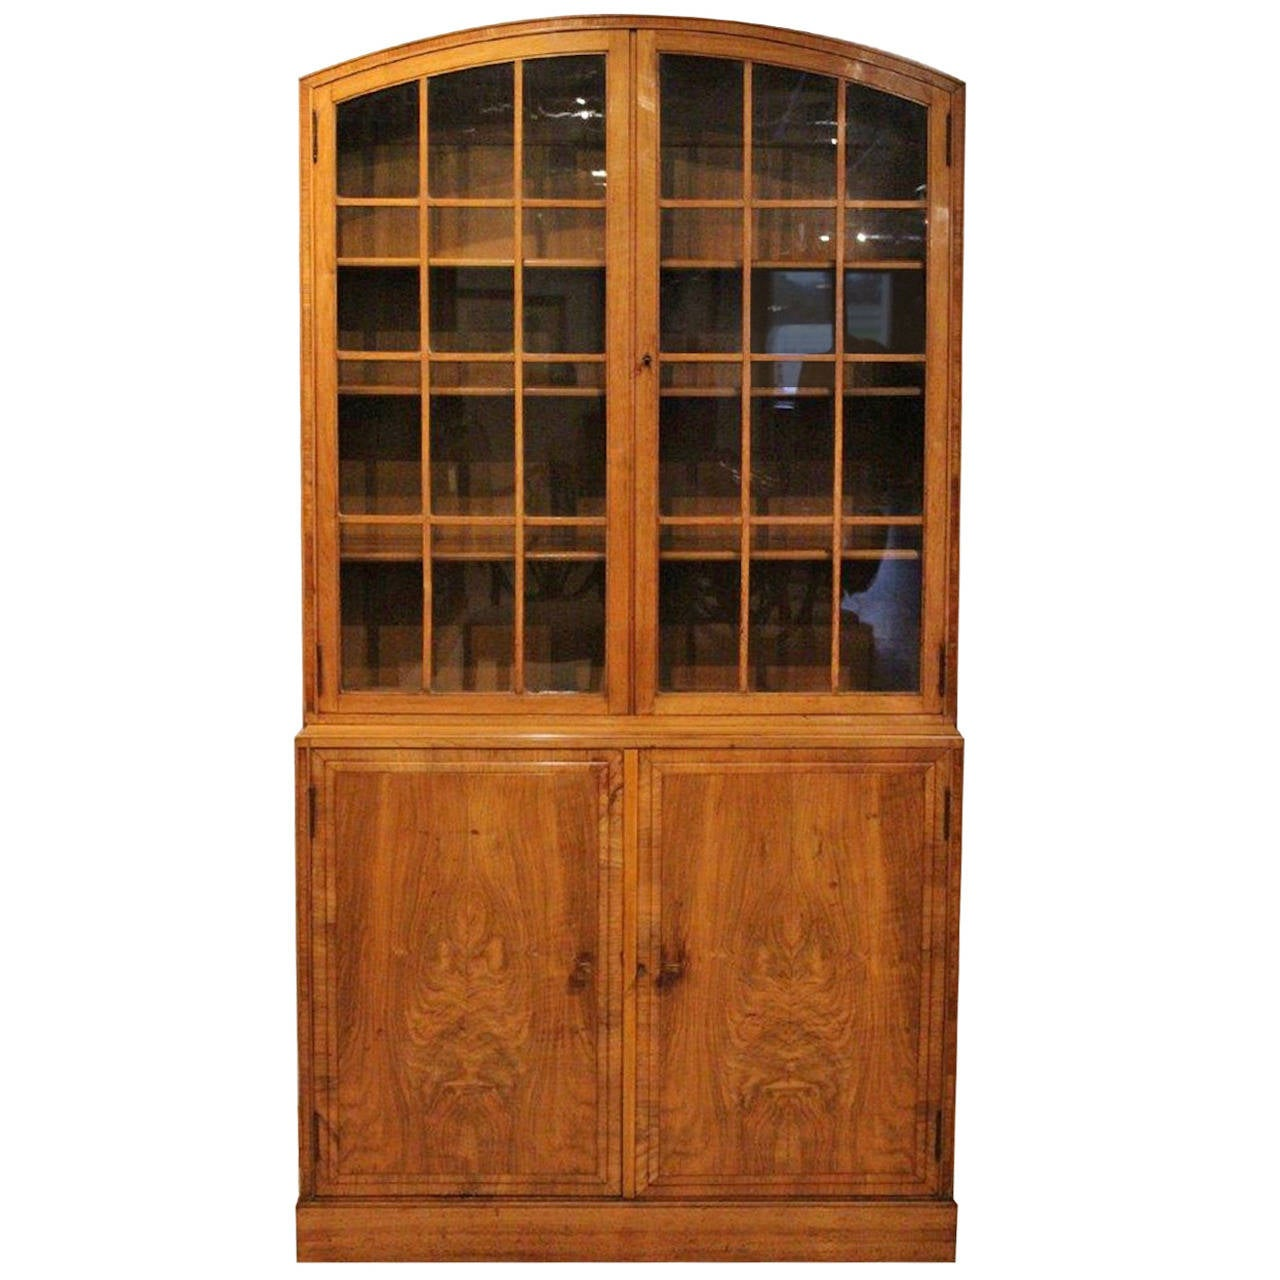 Stylish Walnut Art Deco Period Bookcase By Heals Of London At 1stdibs